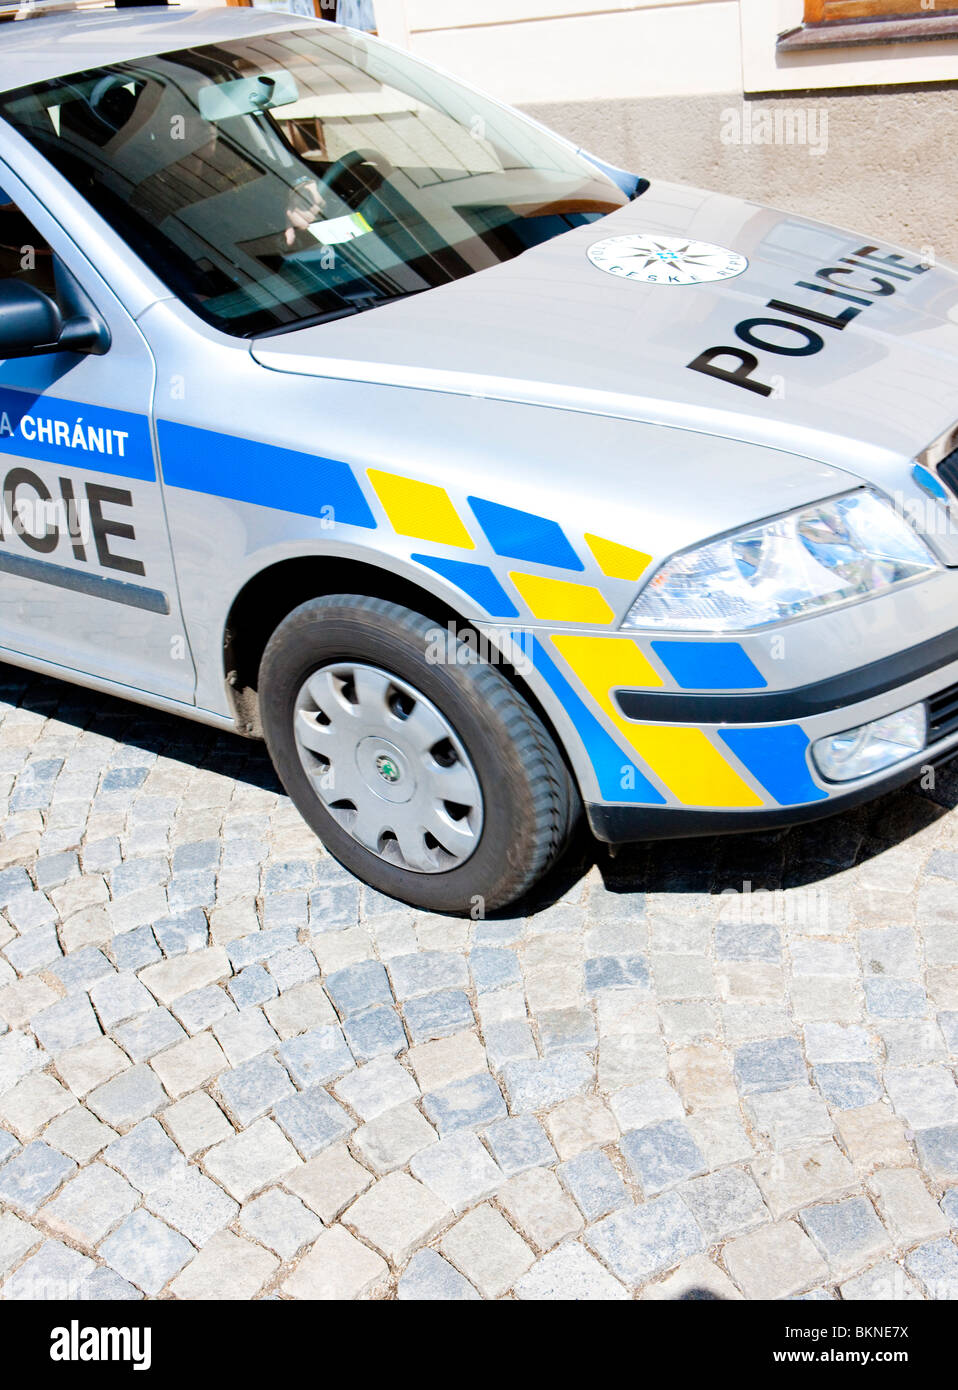 detail of police car, Czech Republic Stock Photo